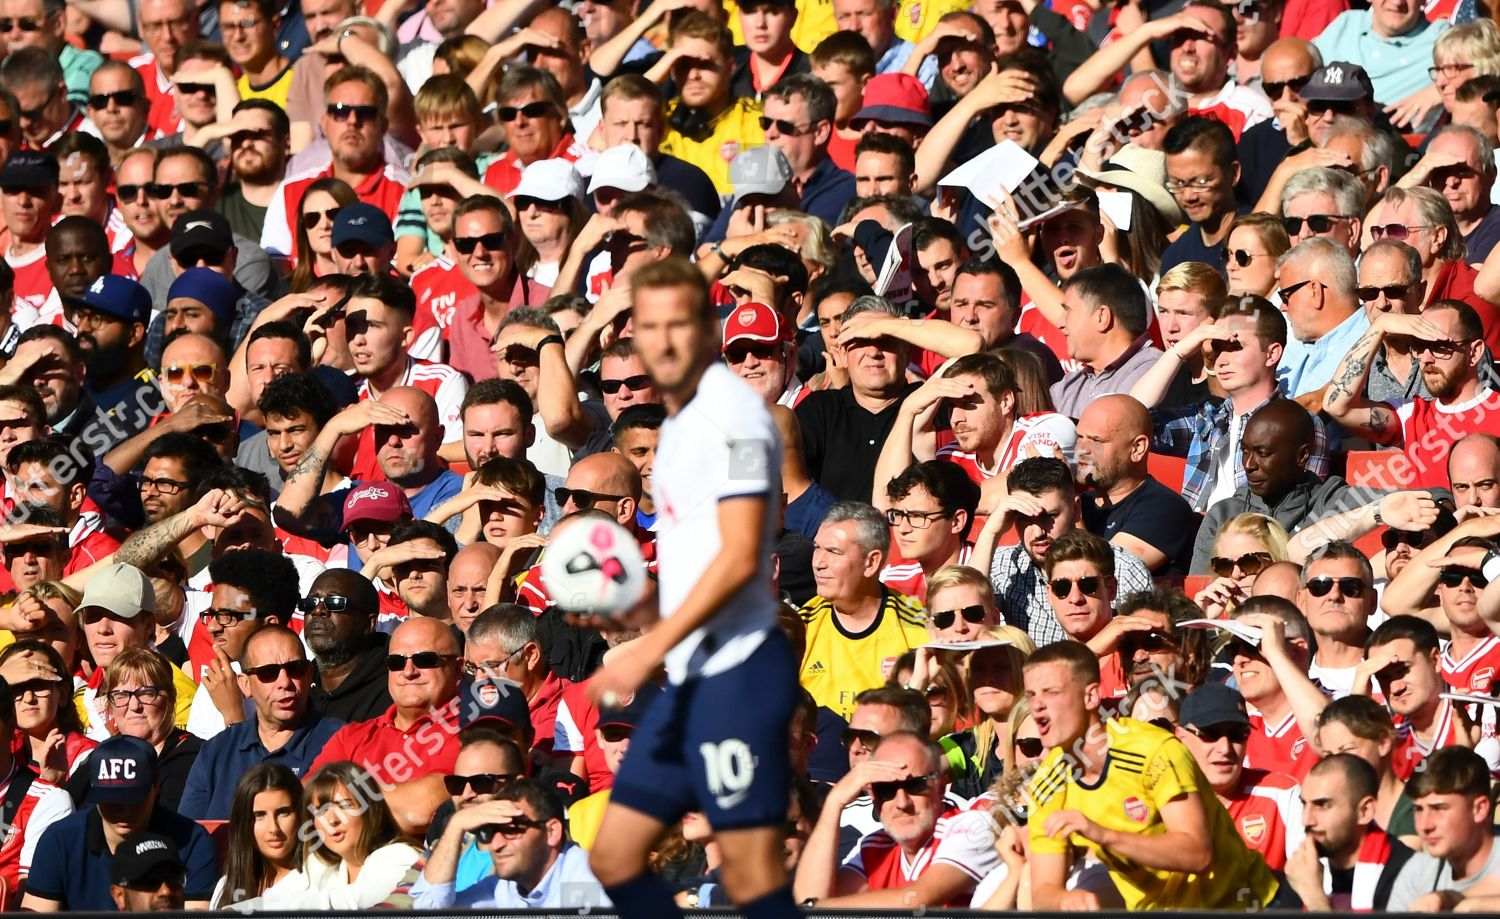 Arsenal Fans Look On Behind Harry Kane Editorial Stock Photo Stock Image Shutterstock